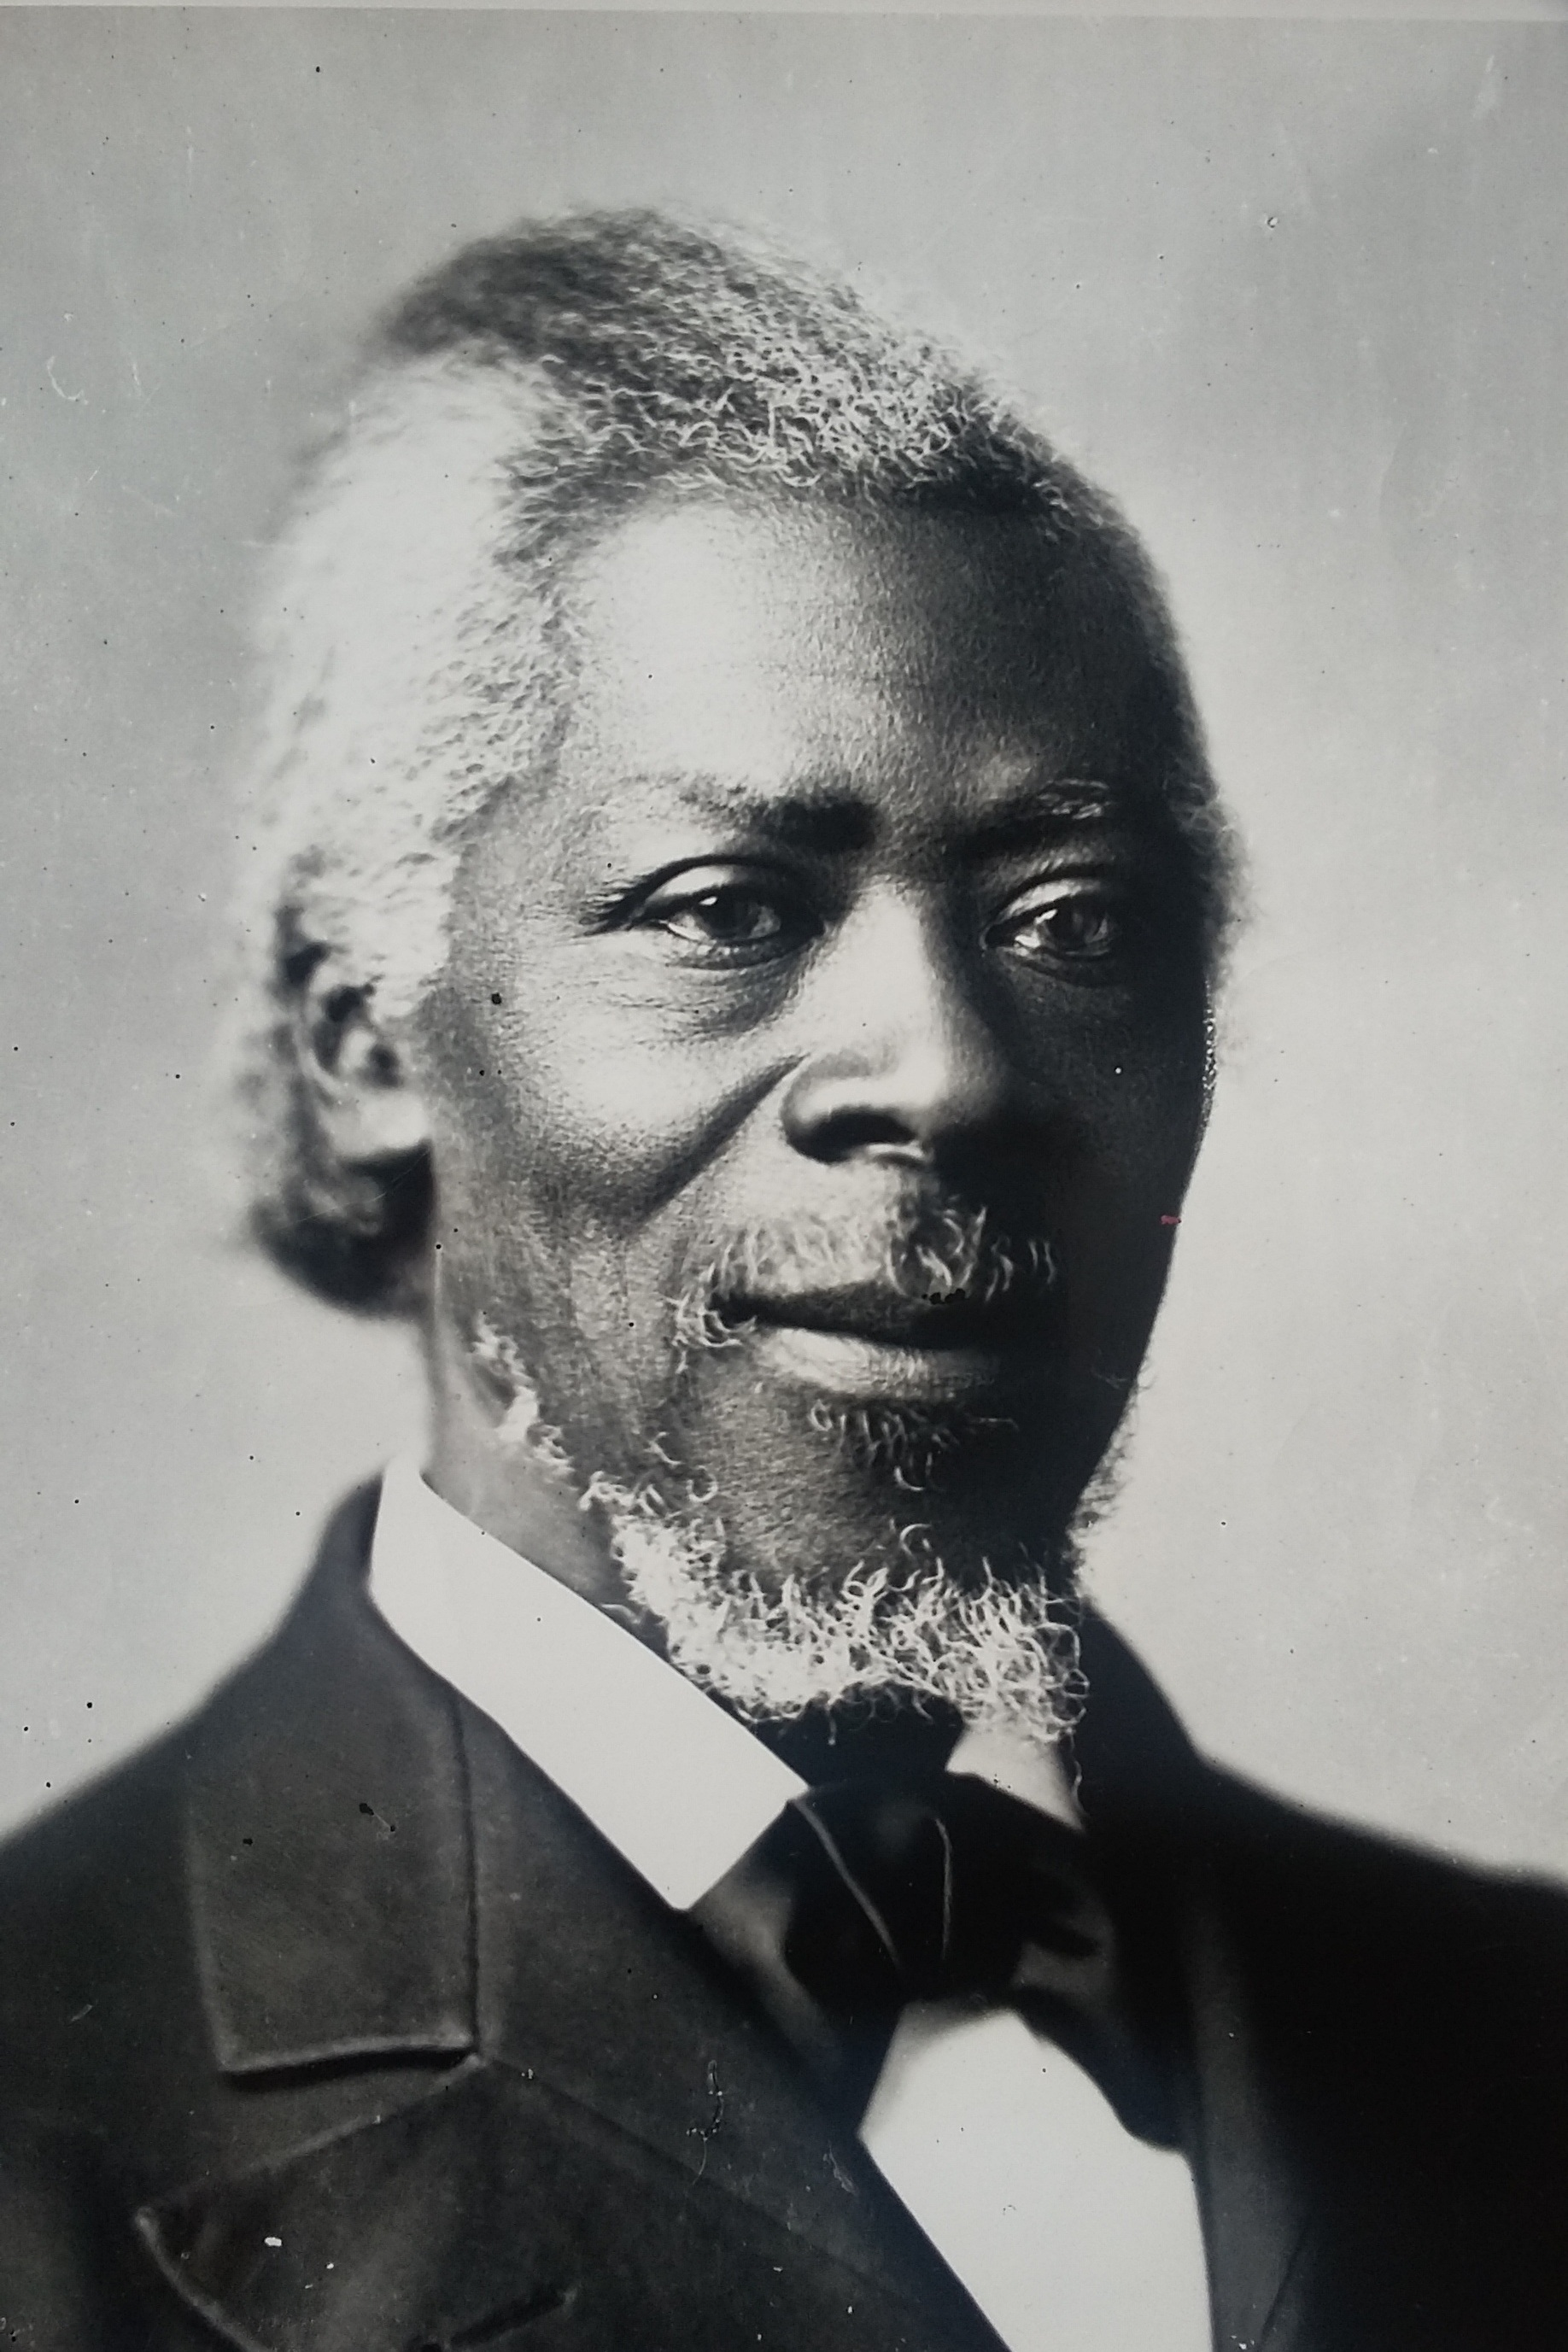 William Lambert was an agent and Secretary of the African American Mysteries, The Order of the Men of Oppression. Lambert started his anti-enslavement organizing as a 13 year old having witnessed an attempted slave return from the streets of Detroit in 1833. For the next 30 years Lambert, a free black, worked diligently trying to dismantle America's slave system.